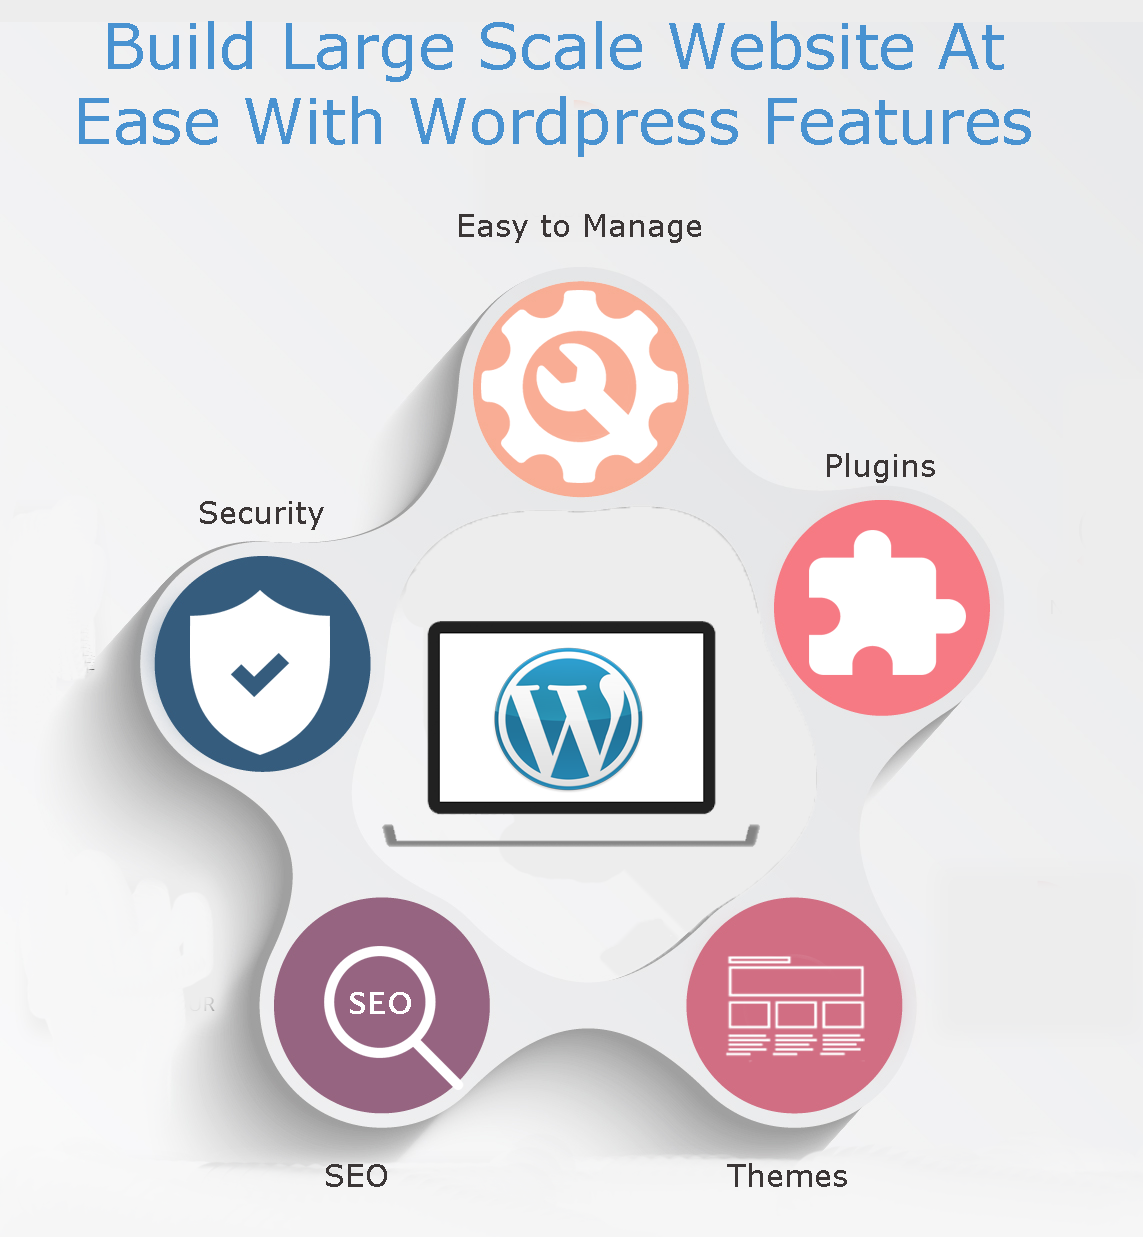 Build Large Scale Website At Ease With Wordpress Features - Image 1